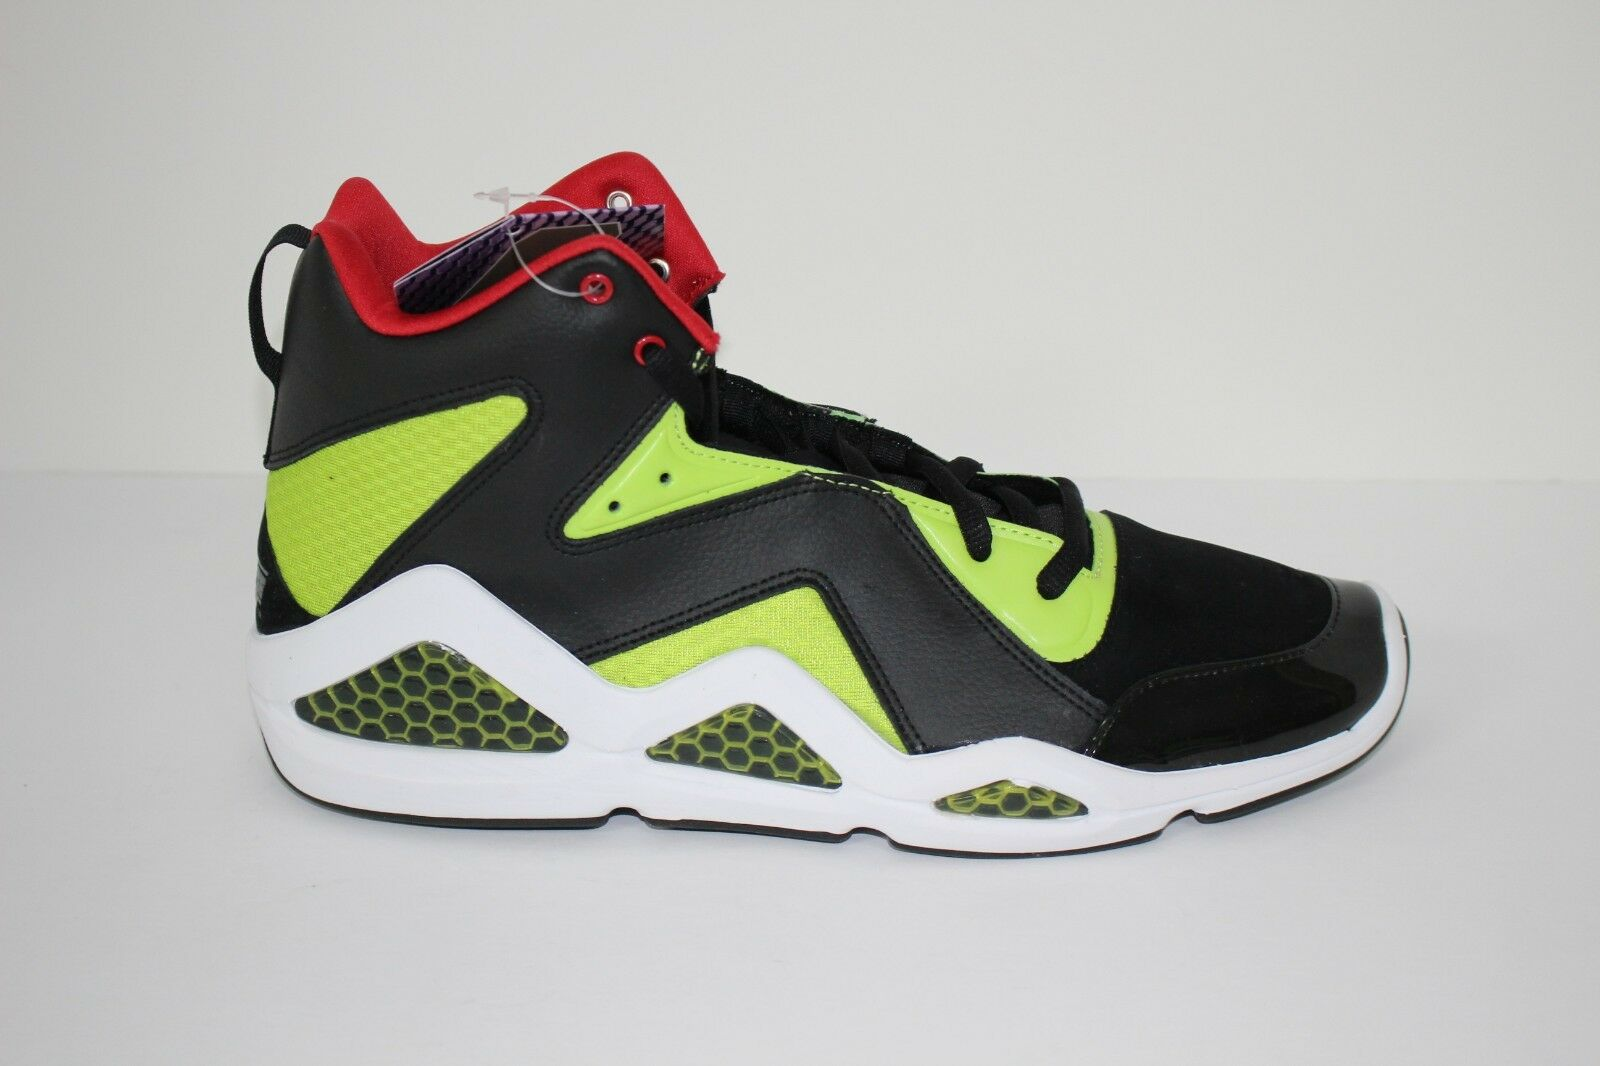 Reebok Kamikaze III Mid NC Mens Basketball shoes J83098 Blk Sonic Green Ex Red